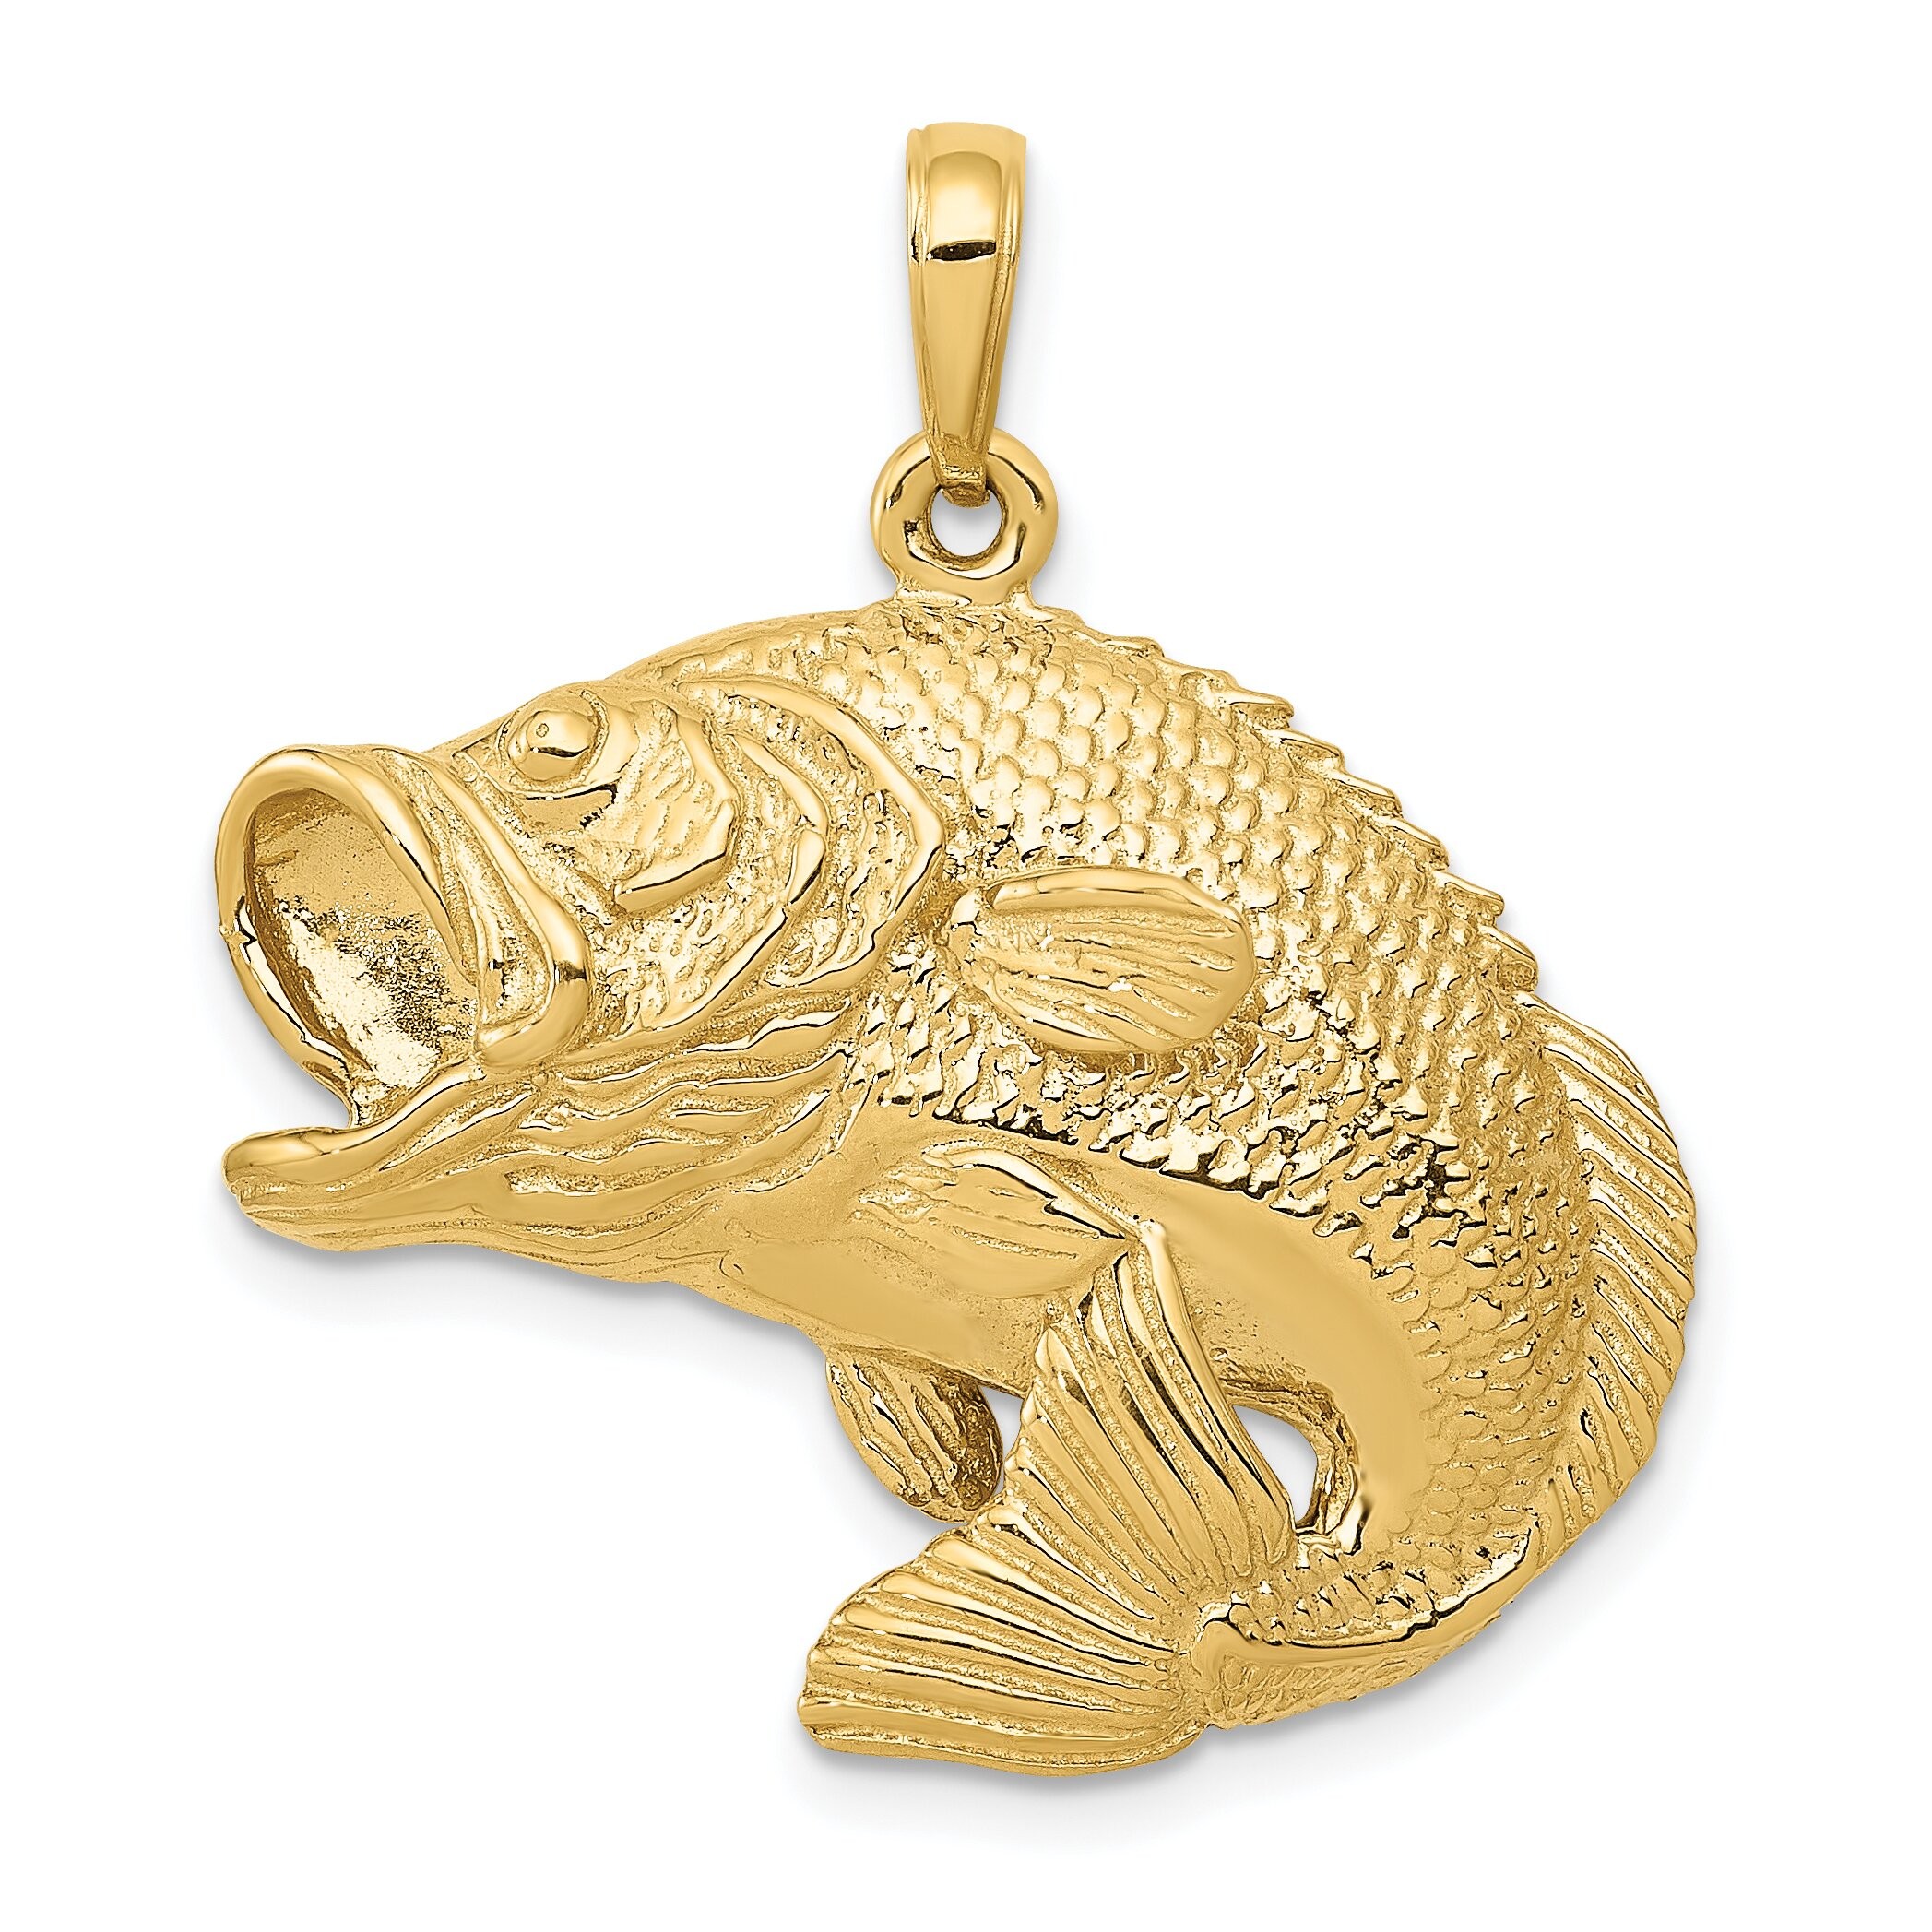 14k gold jumping big mouth bass fish charm pendant ebay for Gold fish charm